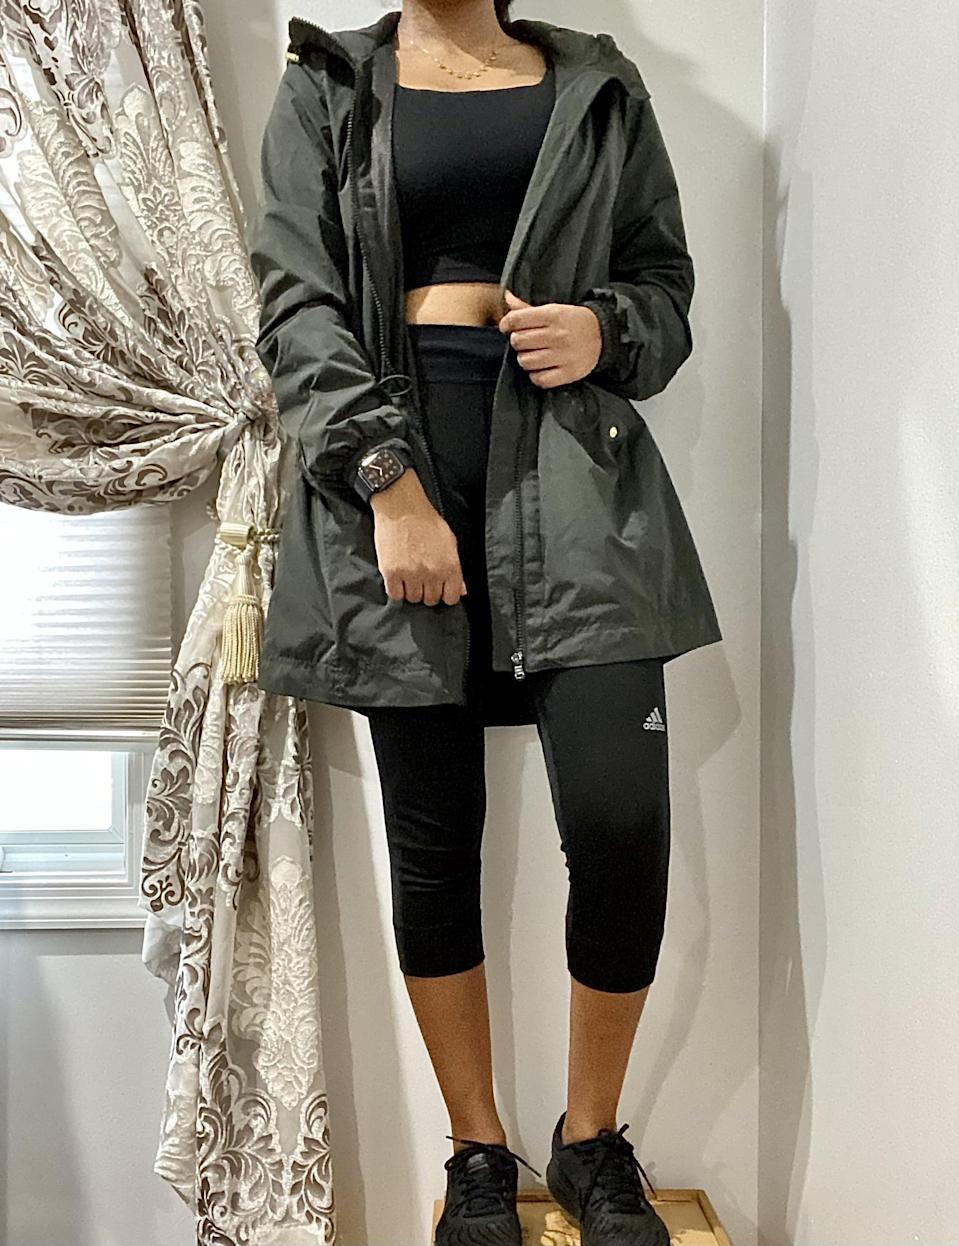 "<p><strong>The item:</strong> <span>Go-H20 Water-Resistant Hooded Anorak for Women</span> ($55)</p> <p><strong>What our editor said:</strong> ""I'm a petite person, and outerwear looks significantly oversized on me but not in a cute <a class=""link rapid-noclick-resp"" href=""https://www.popsugar.com/Ariana-Grande"" rel=""nofollow noopener"" target=""_blank"" data-ylk=""slk:Ariana Grande"">Ariana Grande</a> way, more like in an overwhelming way, like I'm being engulfed in a sea of jackets. What I love about this jacket is that it has an adjustable drawcord at the cinch of the waist. It gives the jacket some shape and makes me look like I have proper curves and not just wearing a poncho from a Niagara Falls tour. I also love that the cuffs of the sleeves are cinched in with elastic bands."" - Anvita Reddy, editorial coordinator, Shop </p> <p>If you want to read more, here is the <a href=""https://www.popsugar.com/fashion/old-navy-weather-proof-jacket-review-47963234"" class=""link rapid-noclick-resp"" rel=""nofollow noopener"" target=""_blank"" data-ylk=""slk:complete review"">complete review</a>.</p>"